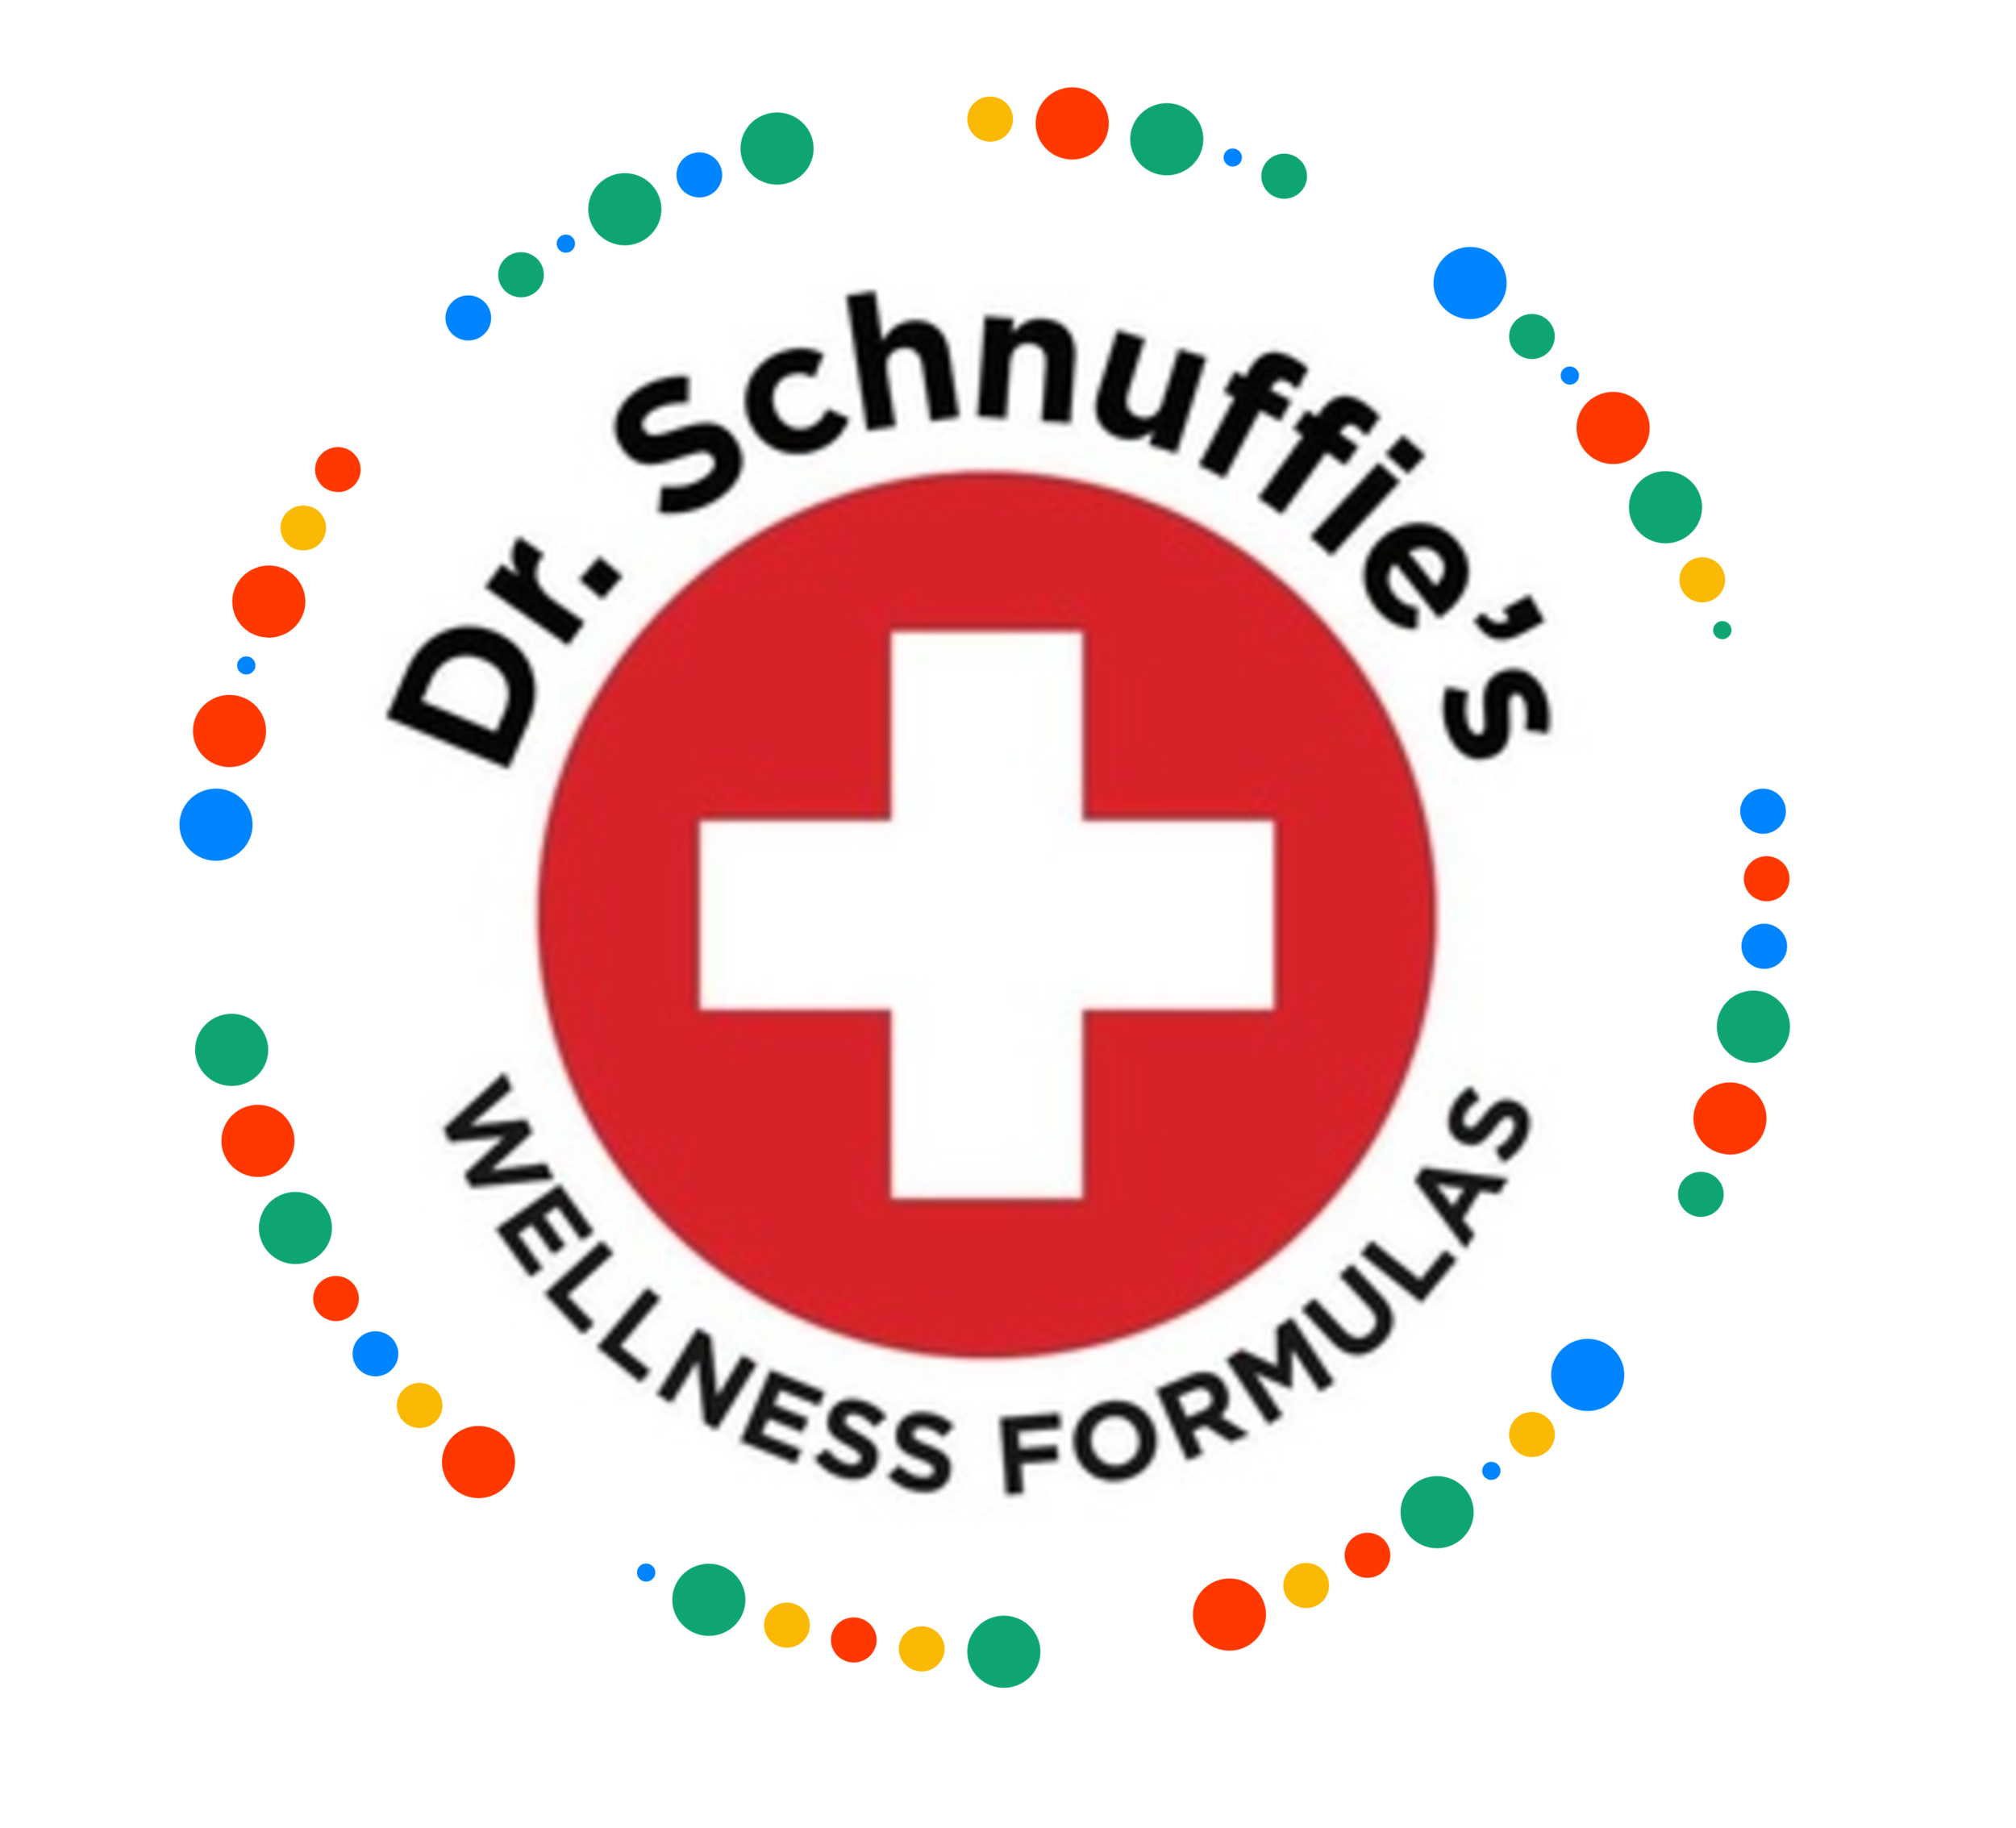 dr+schnuffies+wellness+formulas+amrican+made+immune+system+support+hgh+dose+vitamin+supplement+natural+remedy+cold+flu.png